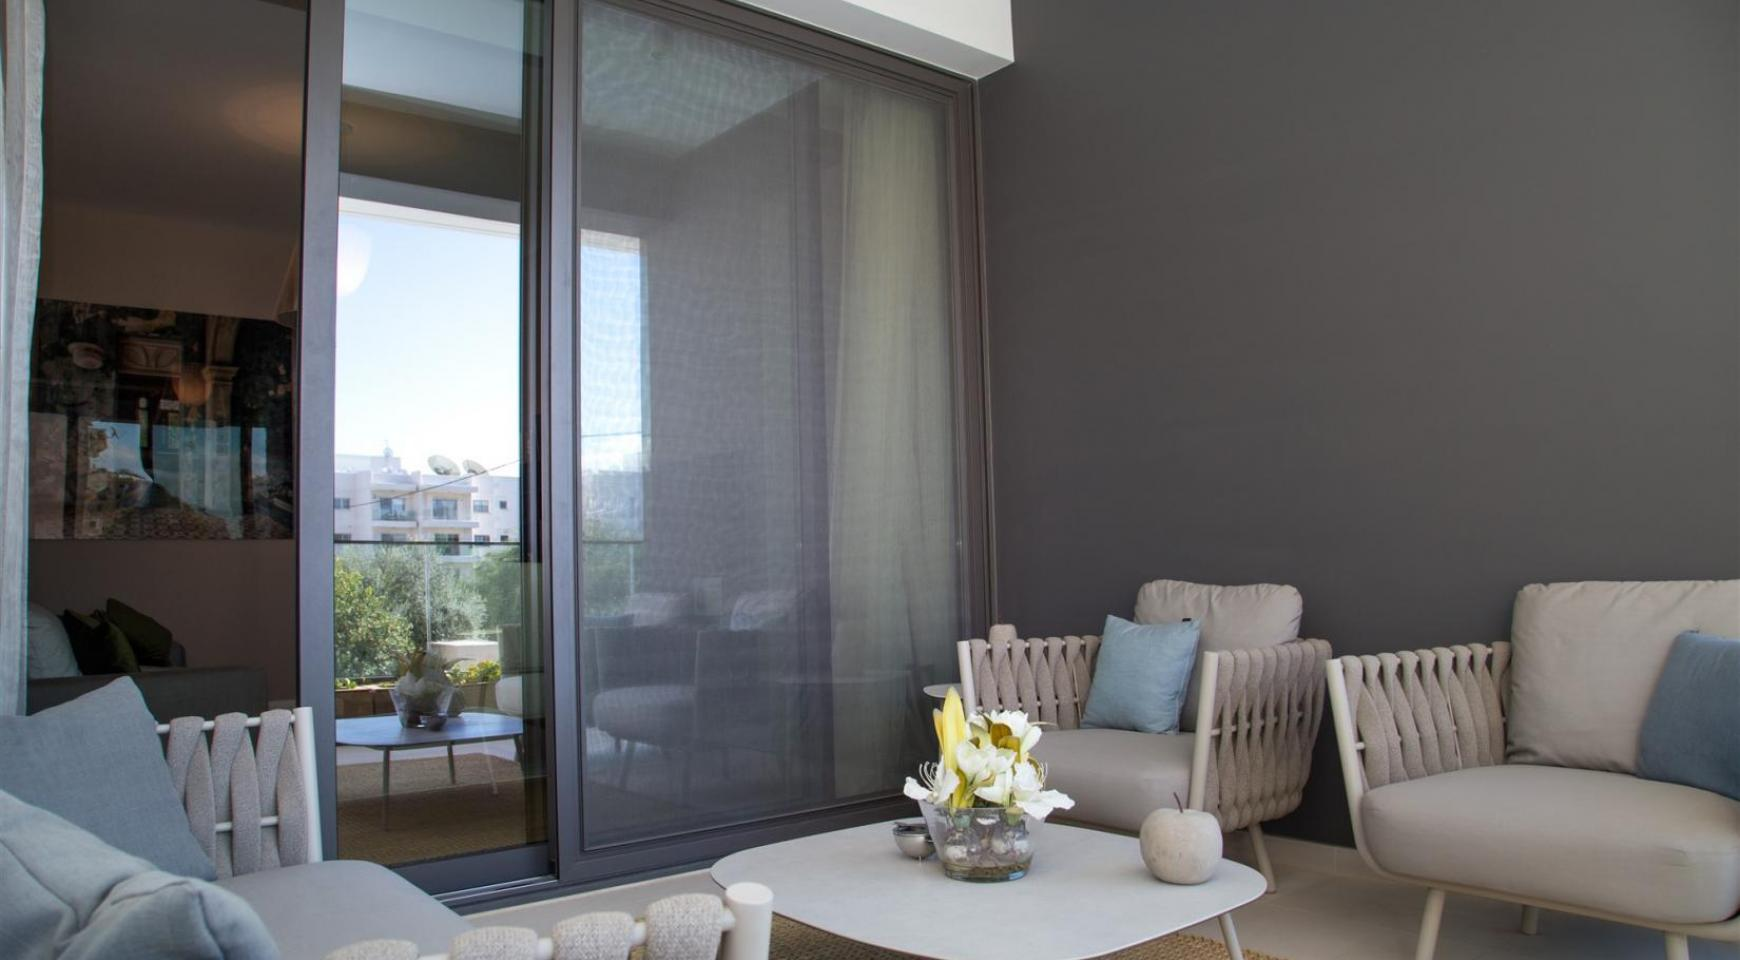 Malibu Residence. New Modern 3 Bedroom Apartment 202 in a Luxury Complex - 32